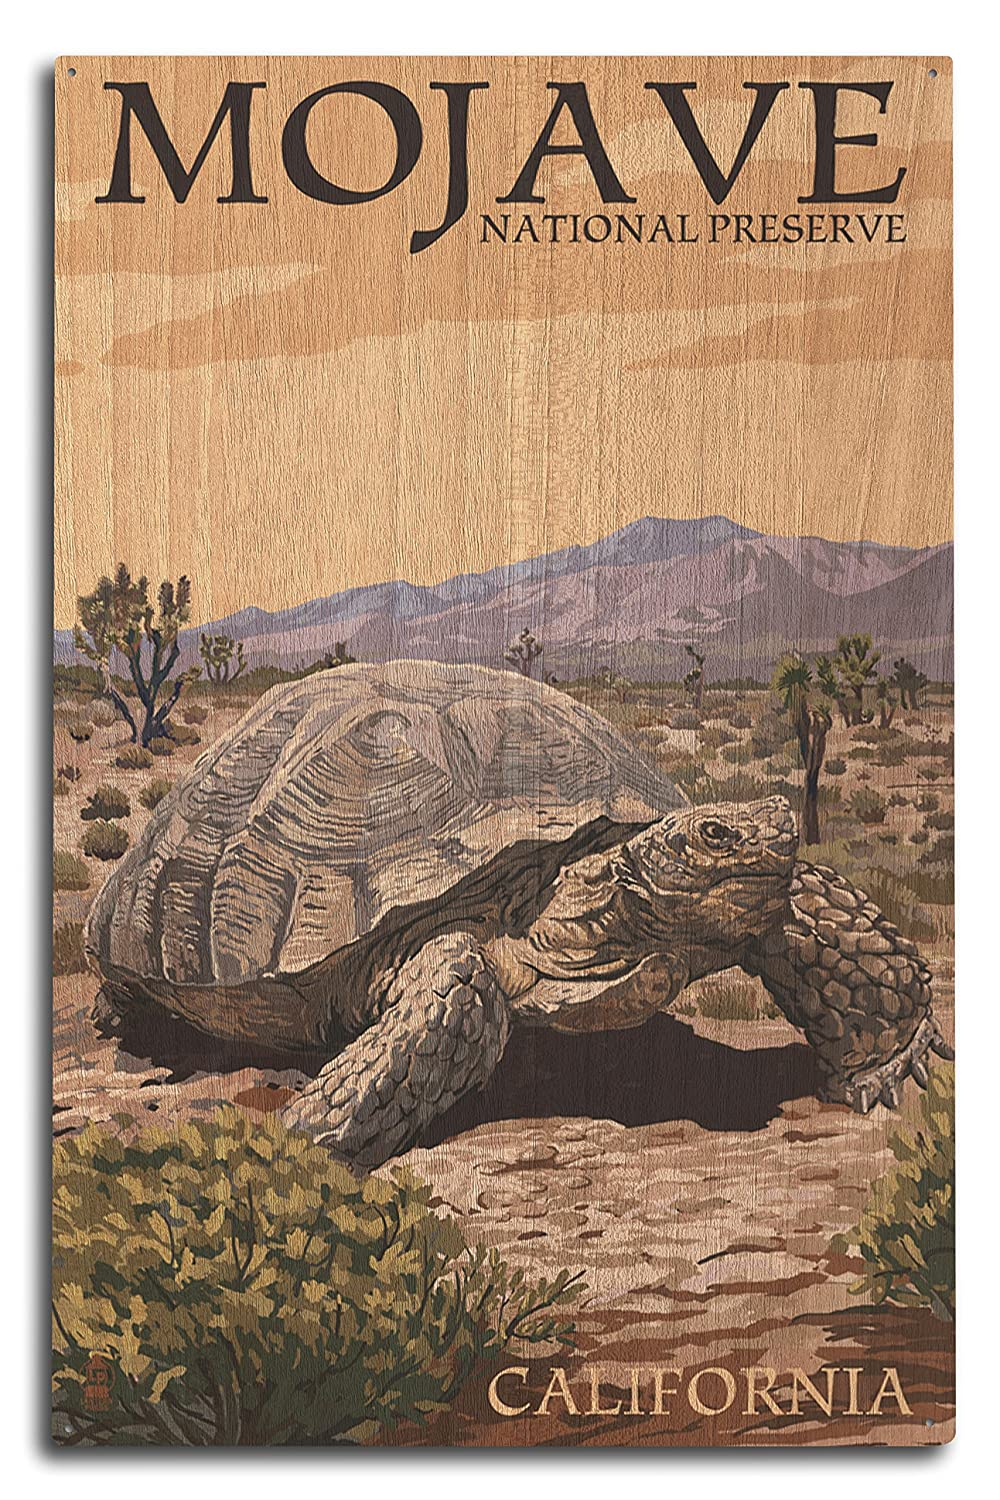 【25%OFF】 Tortoise - Mojave 15 National Sign Preserve, Wood California (12x18 Art Print, Wall Decor Travel Poster) by Lantern Press B07367LKRD 10 x 15 Wood Sign 10 x 15 Wood Sign, AJIOKA:70456912 --- kuoying.net